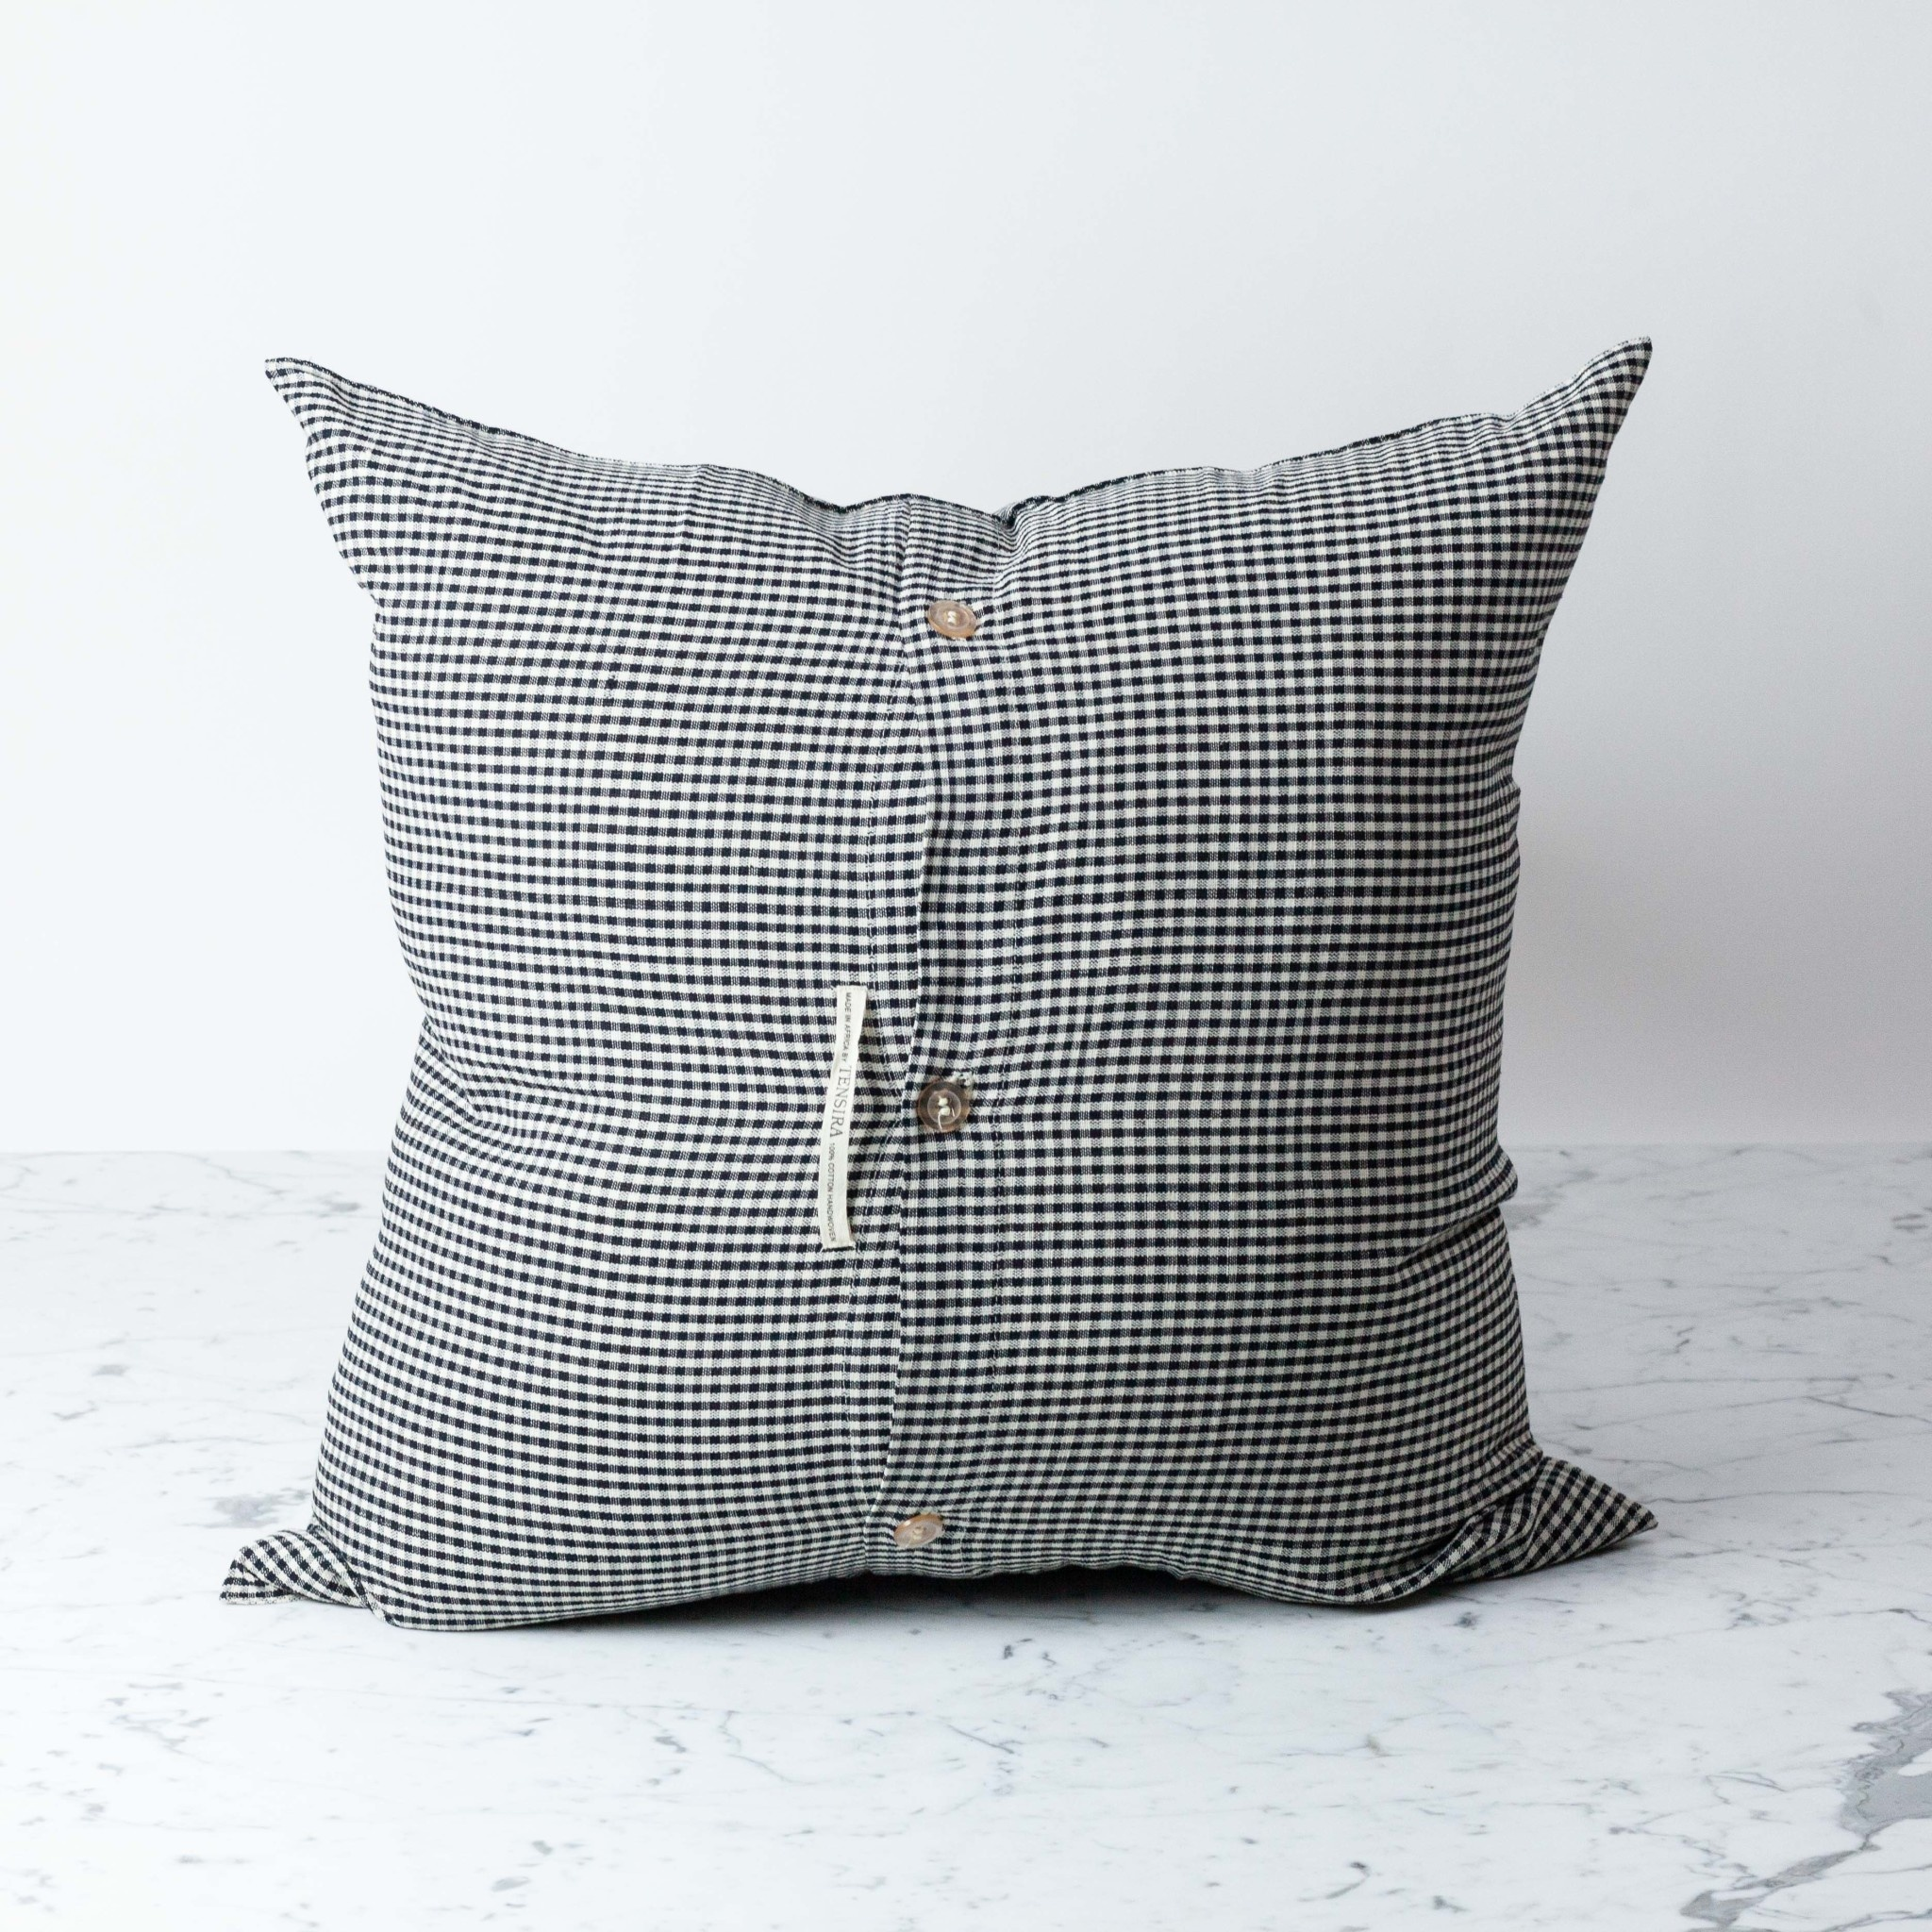 TENSIRA Handwoven Cotton Pillow with Down Insert - Button Closure - Black + White Gingham - 24 x 24 in